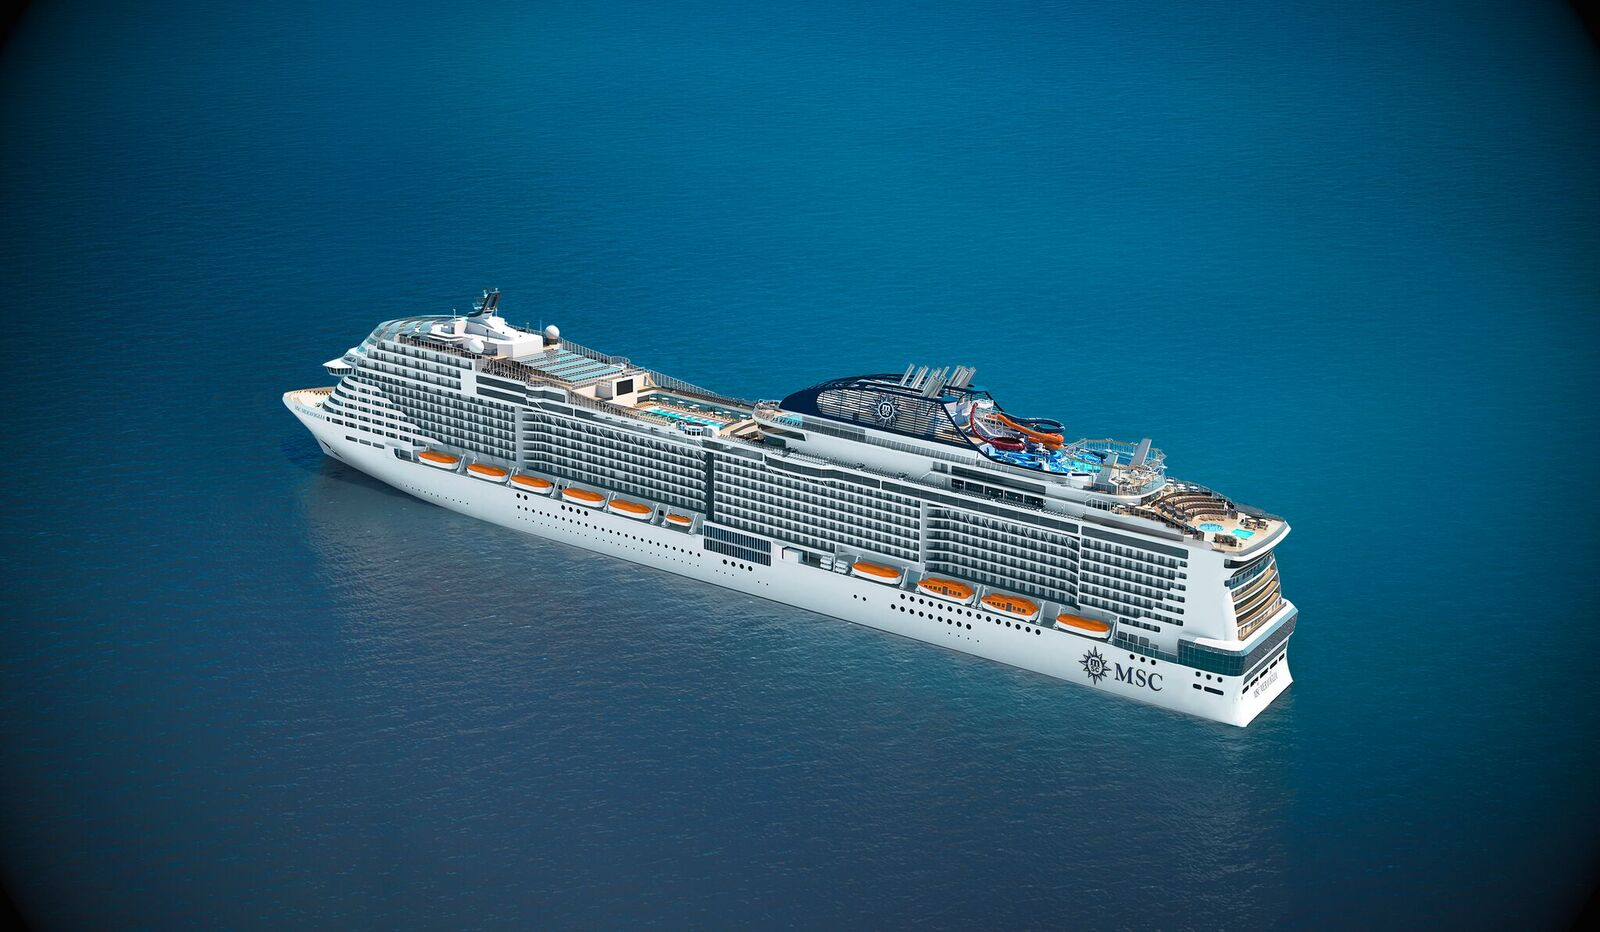 MSC Meraviglia Cruise Bookings - Cruise ships with wifi